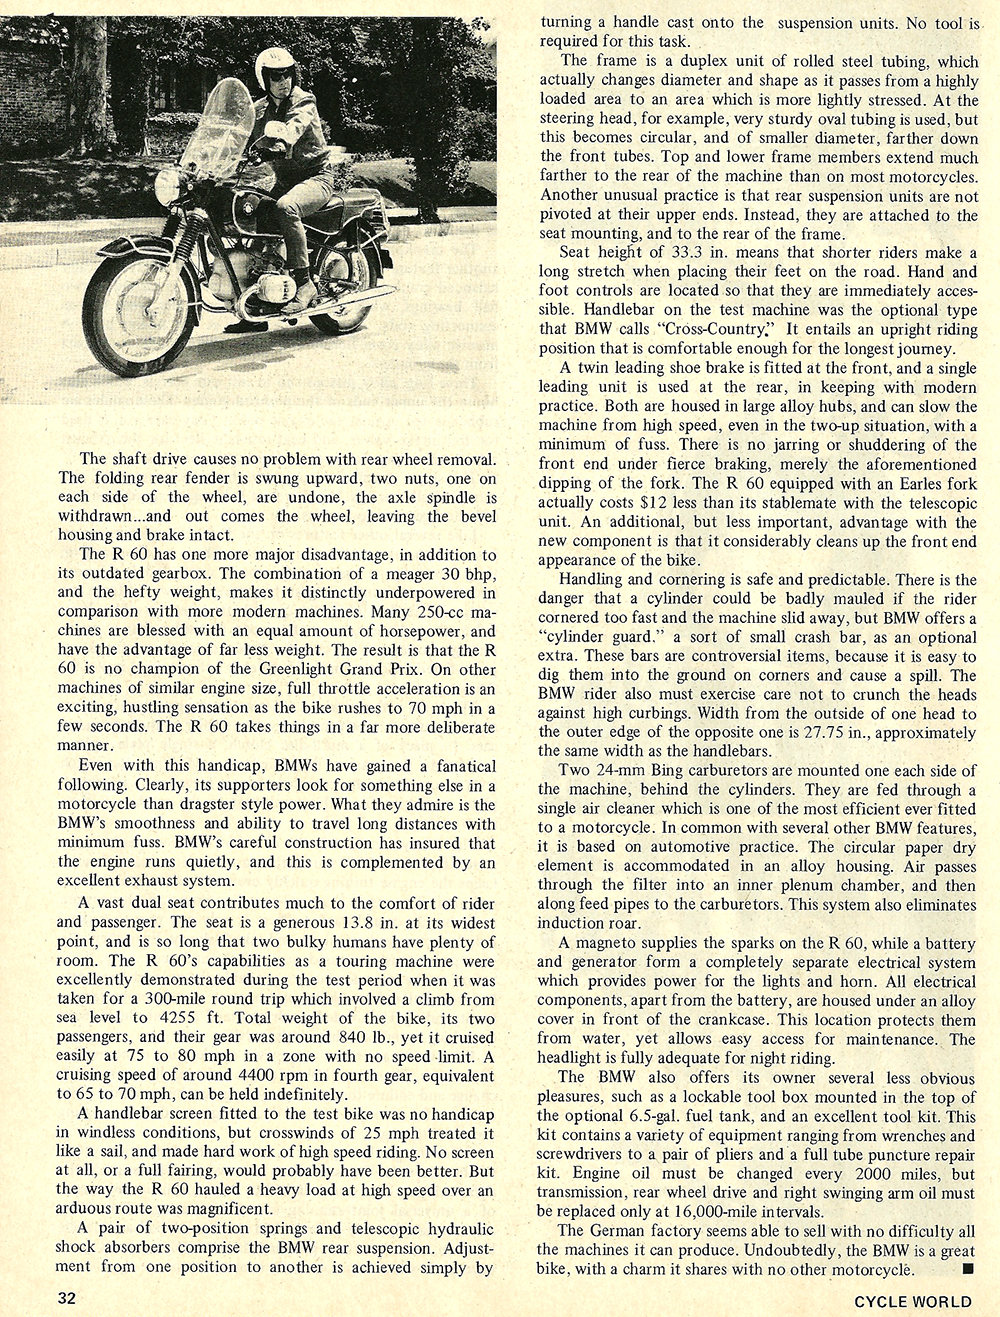 1968 BMW R60 US road test 03.jpg